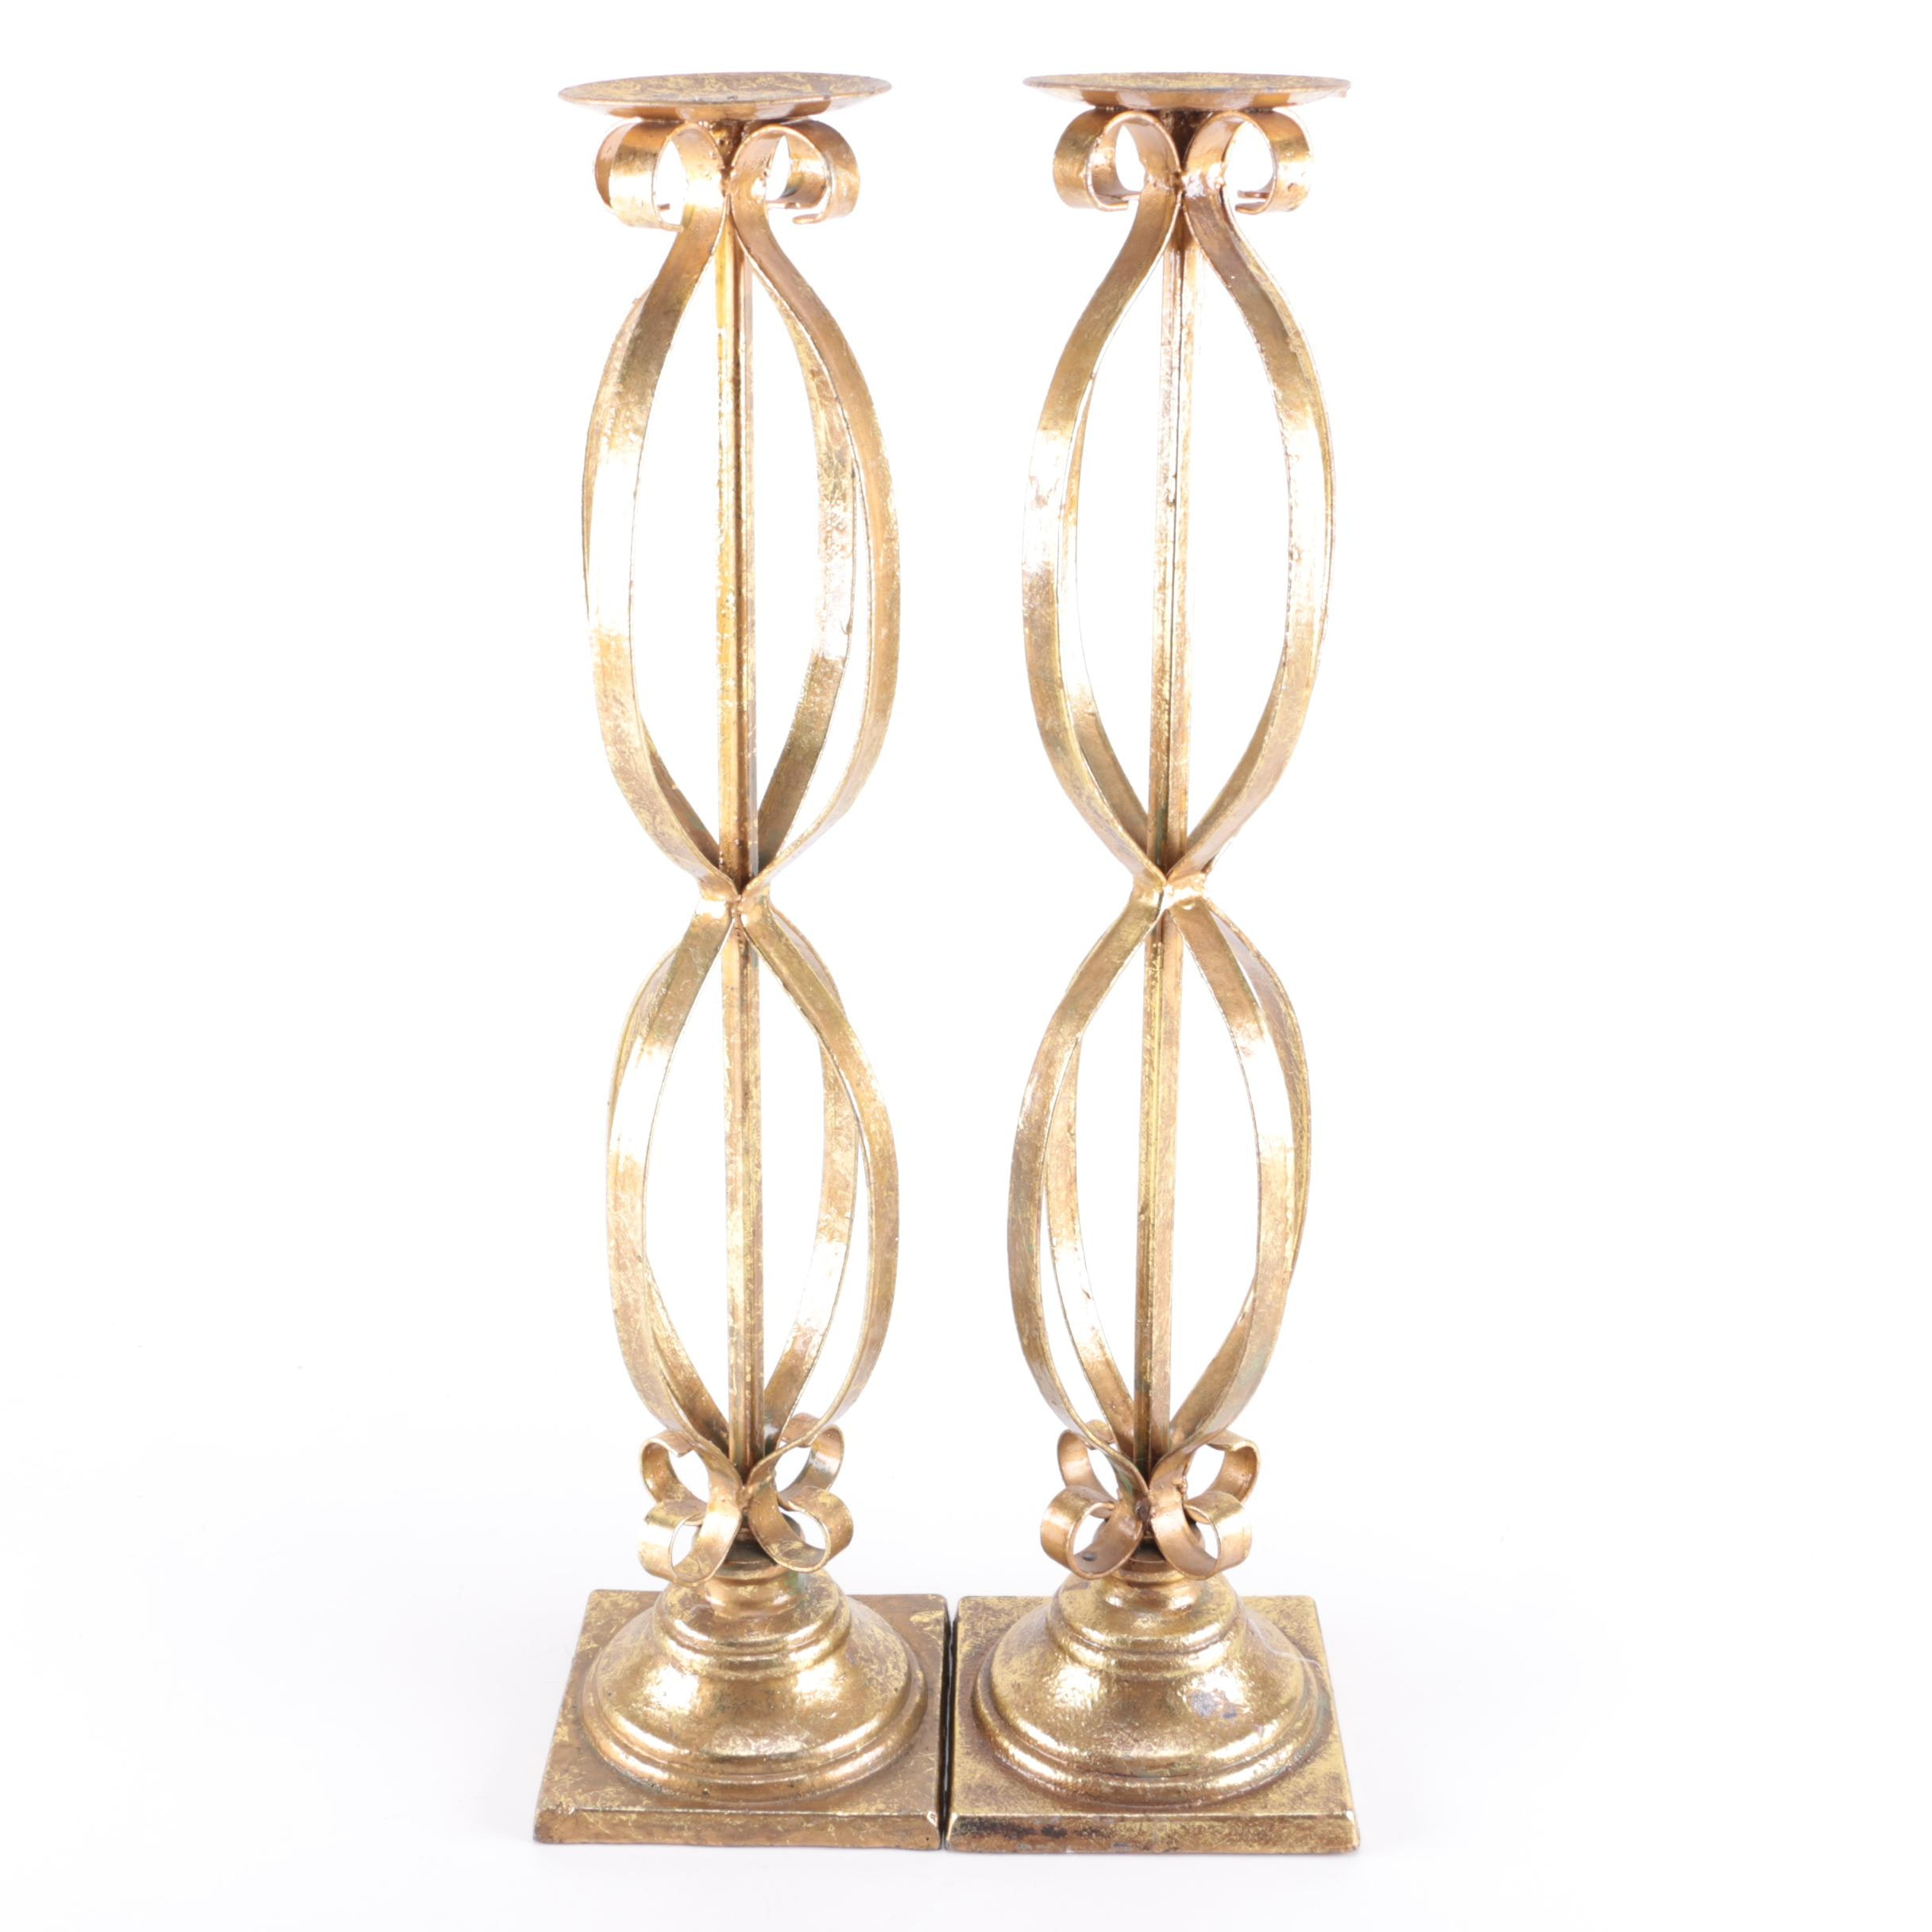 Gold Tone Metal Pillar Candle Holders